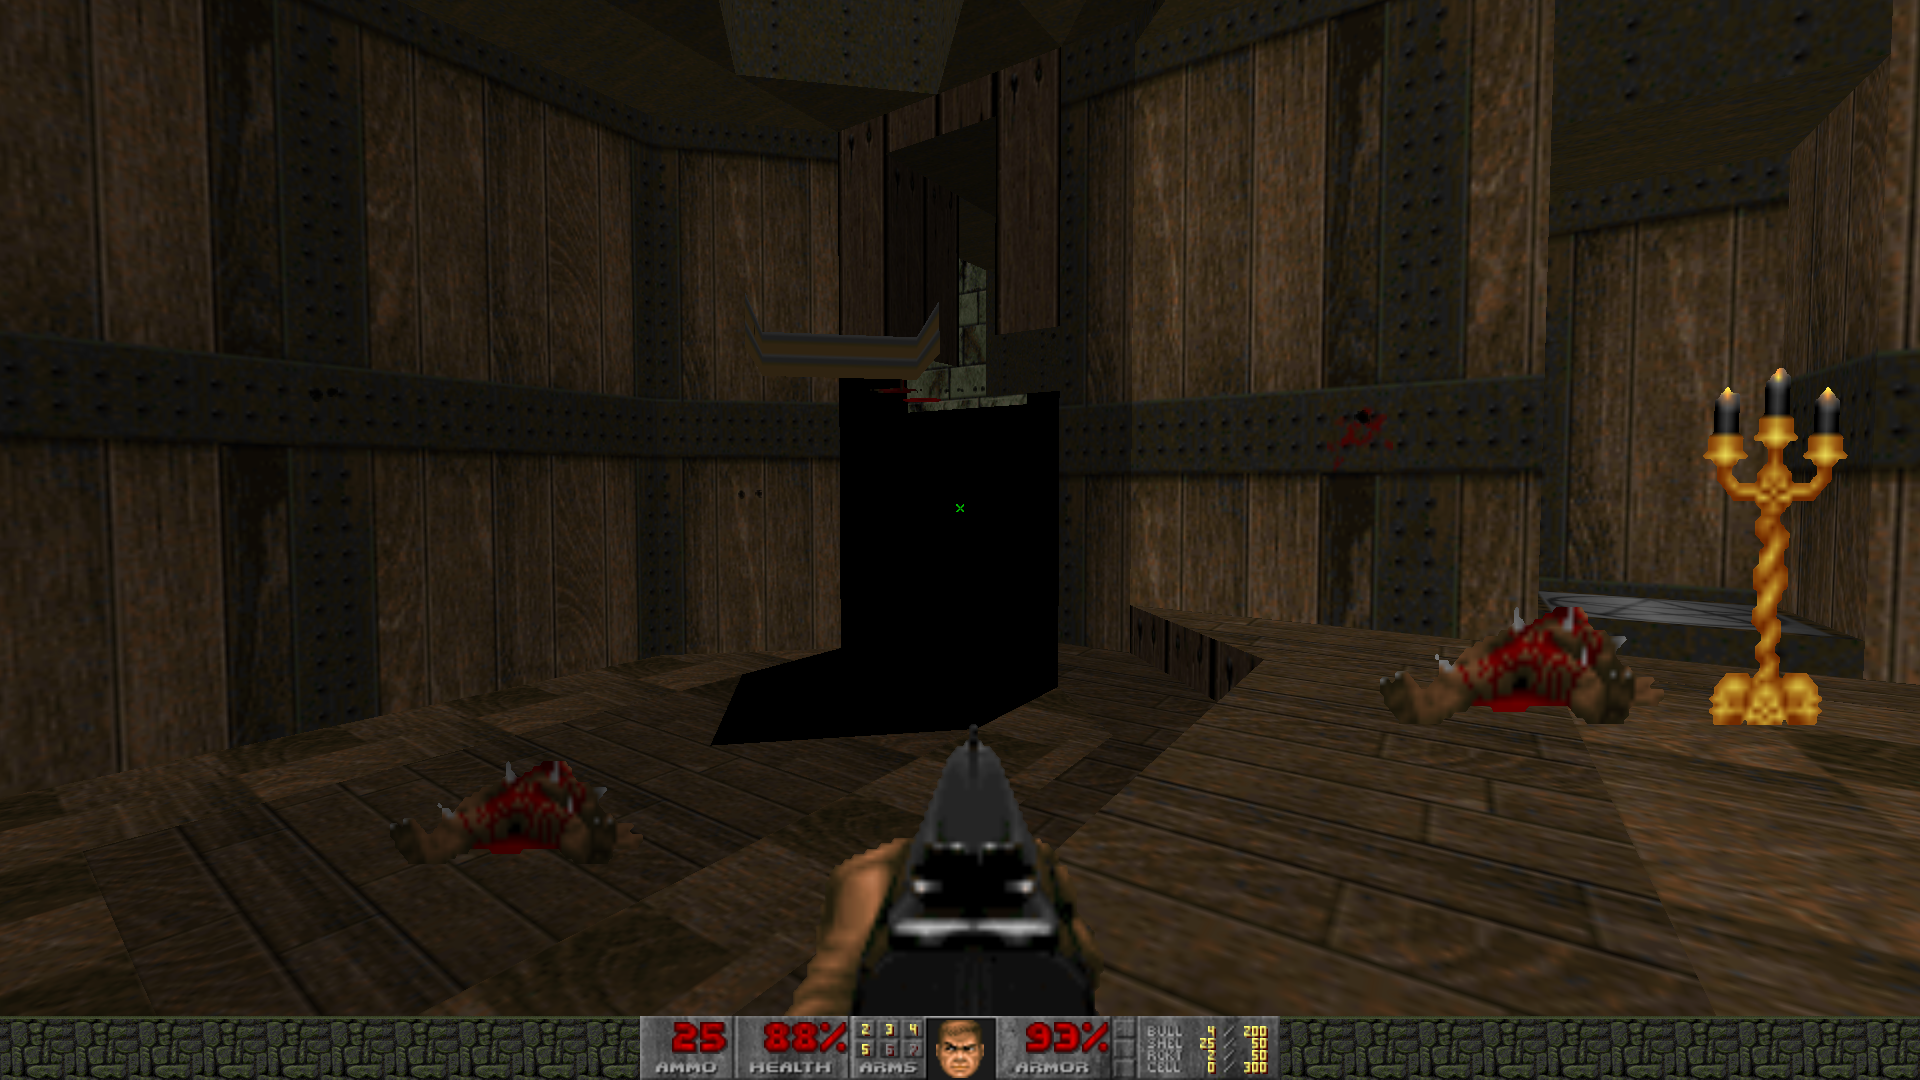 Screenshot_Doom_20191002_083138.png.e8594b0eb6776037d53cfeab8f8b70df.png